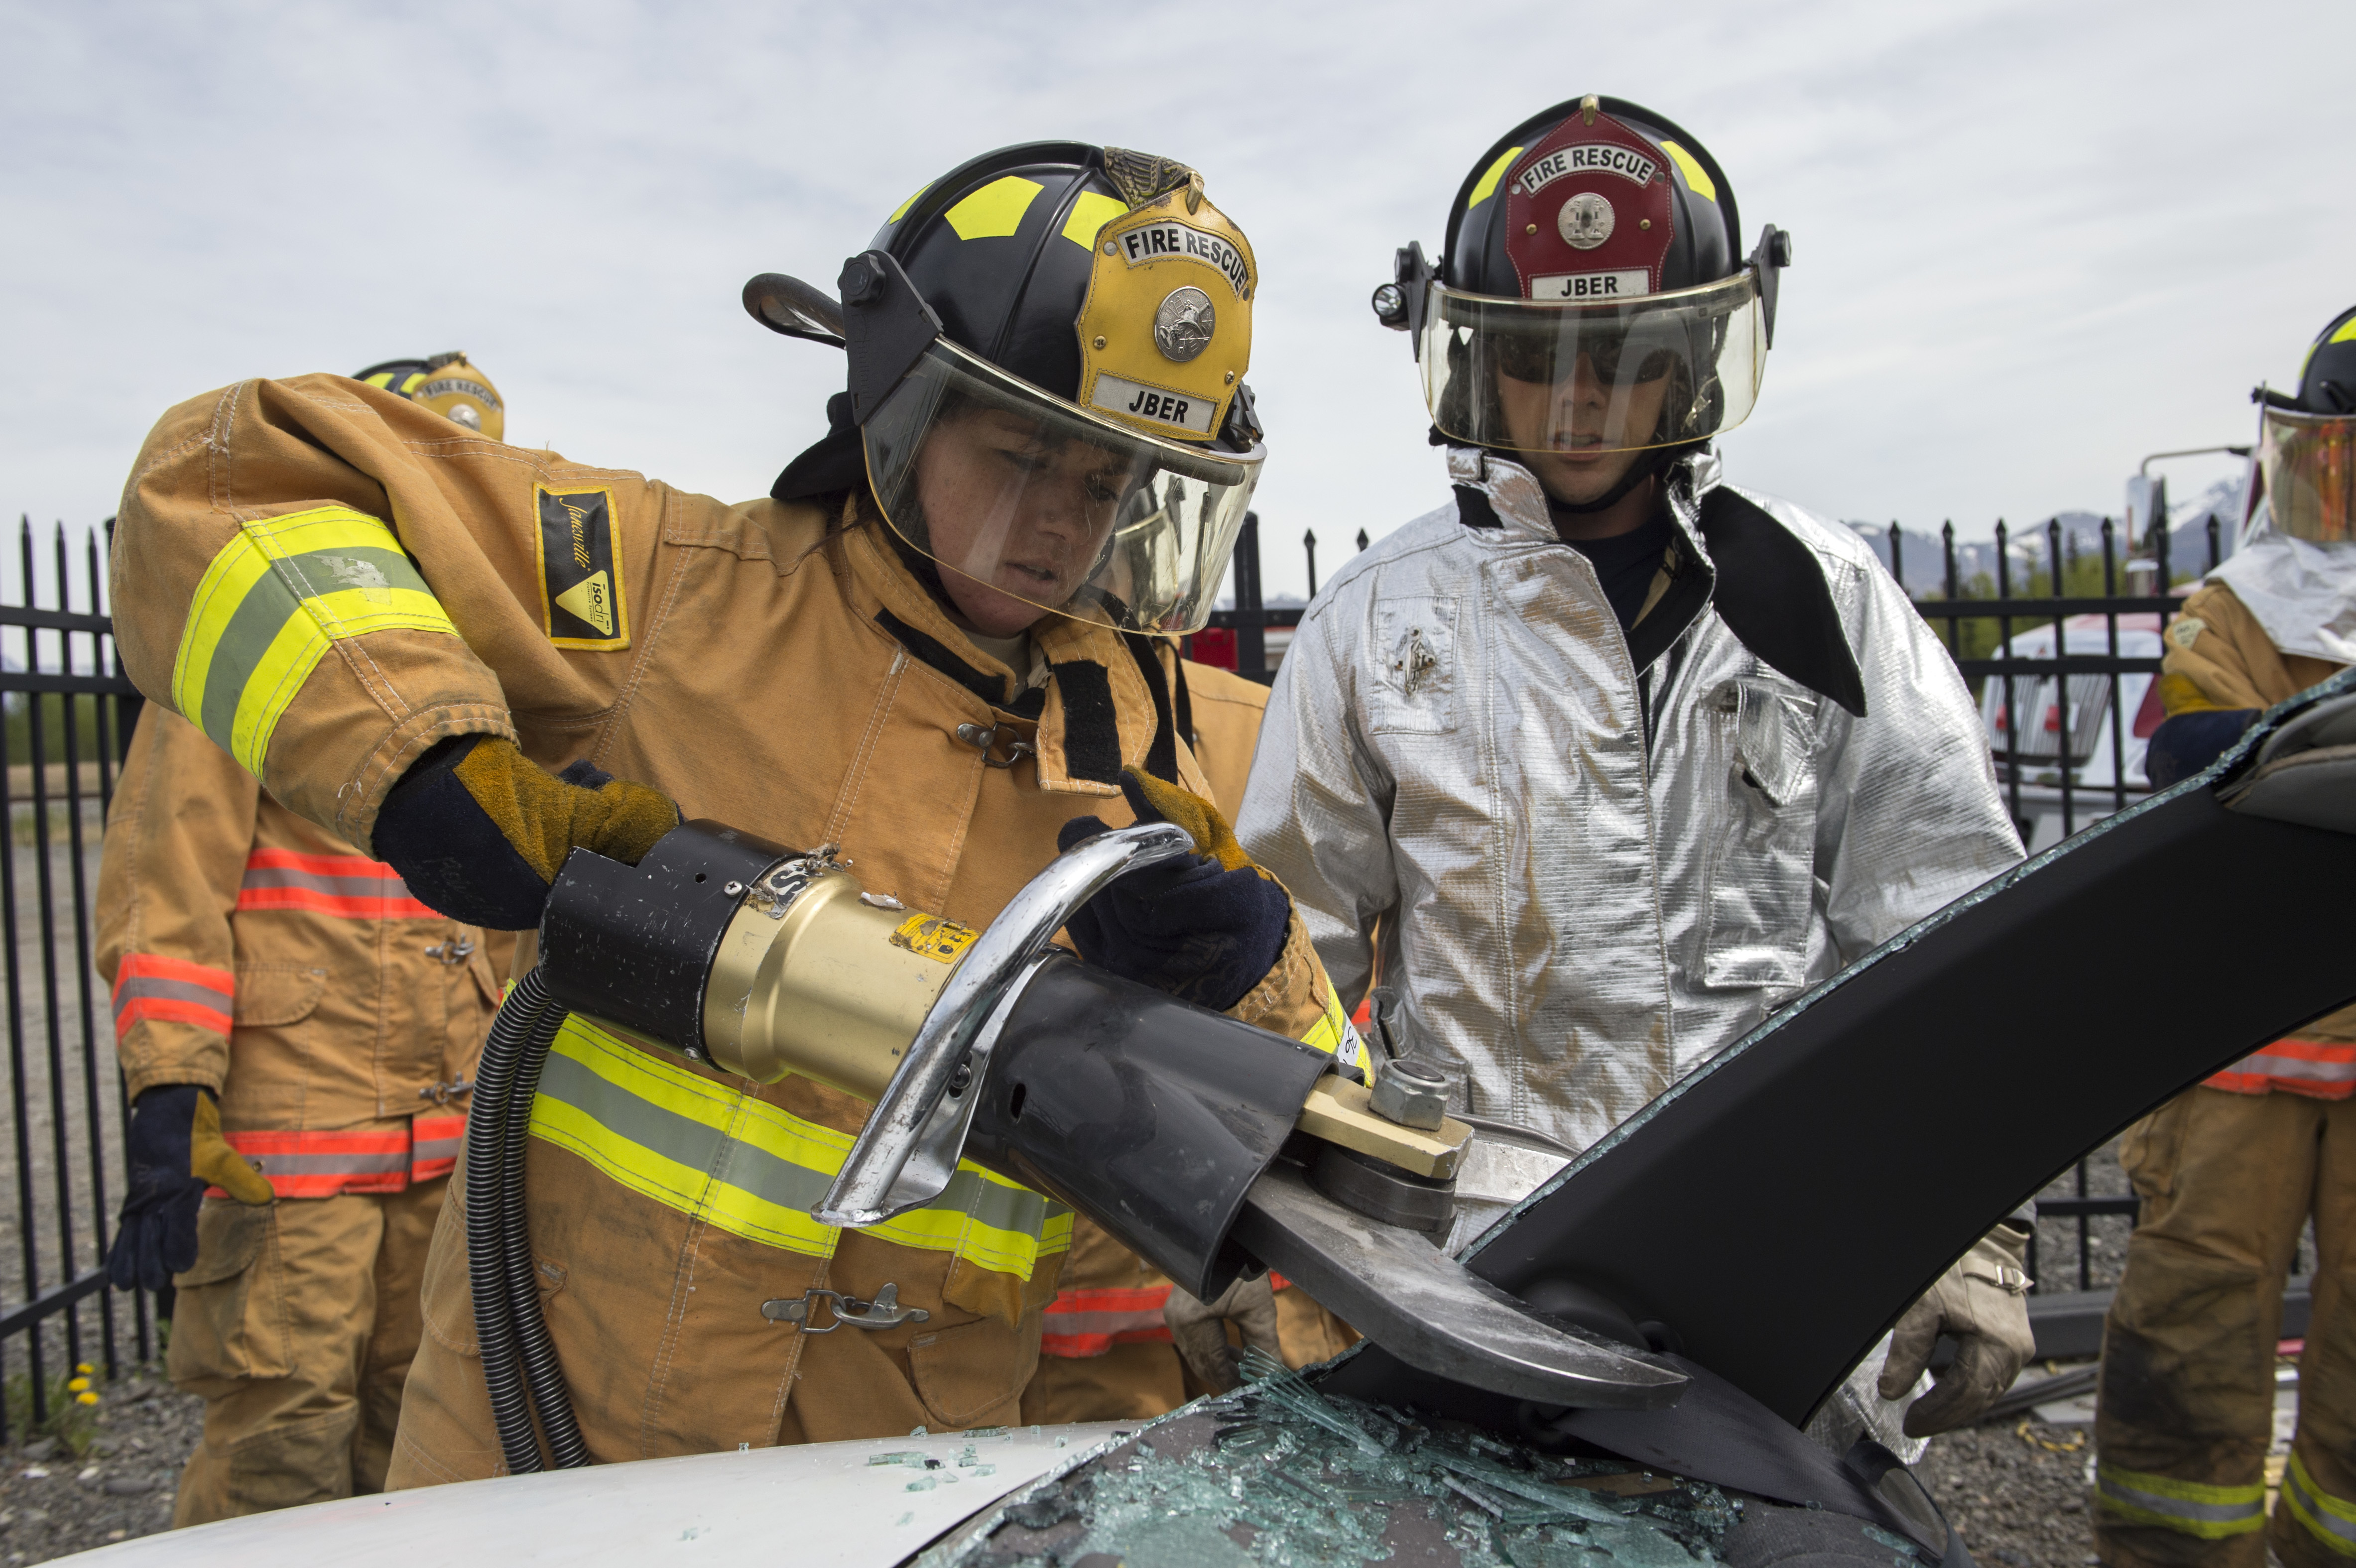 U.S. Air Force Academy cadet Katheryn New, left, a native of Mosca, Colo., operates a hydraulic rescue tool under the supervision of Troy Anthis, a firefighter assigned to the 673rd Civil Engineer Squadron, while conducting rescue training on Joint Base Elmendorf-Richardson, Alaska, May 20, 2015. The training provided the cadets, studying civil engineering, the opportunity to work with Airmen and noncommissioned officers in their field of choice. (U.S. Air Force photo/Alejandro Pena)